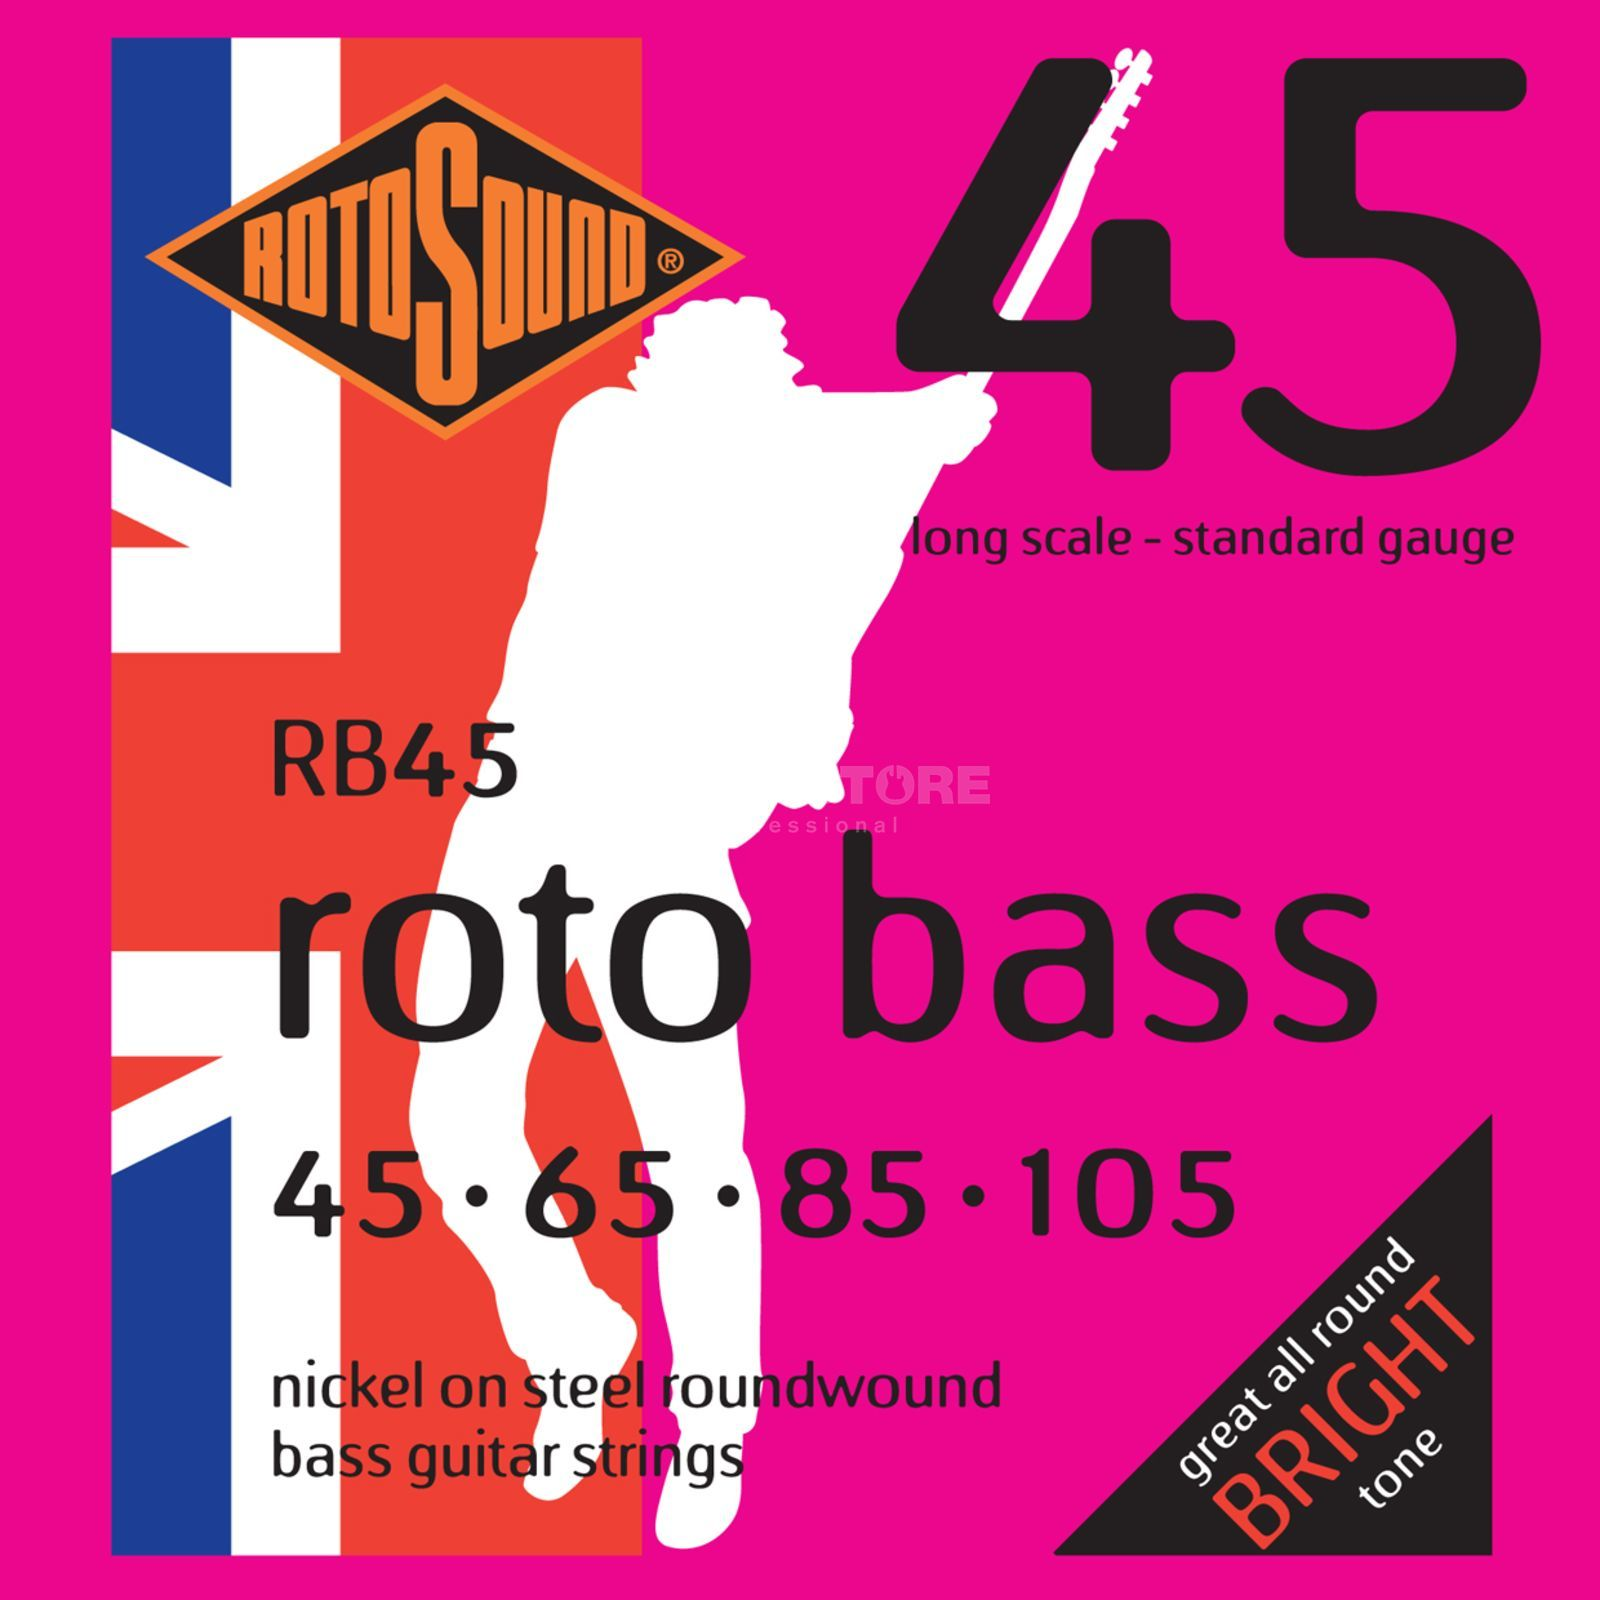 Rotosound RB45 RotoBass Nickel Bass Guit ar Strings 45-105   Изображение товара